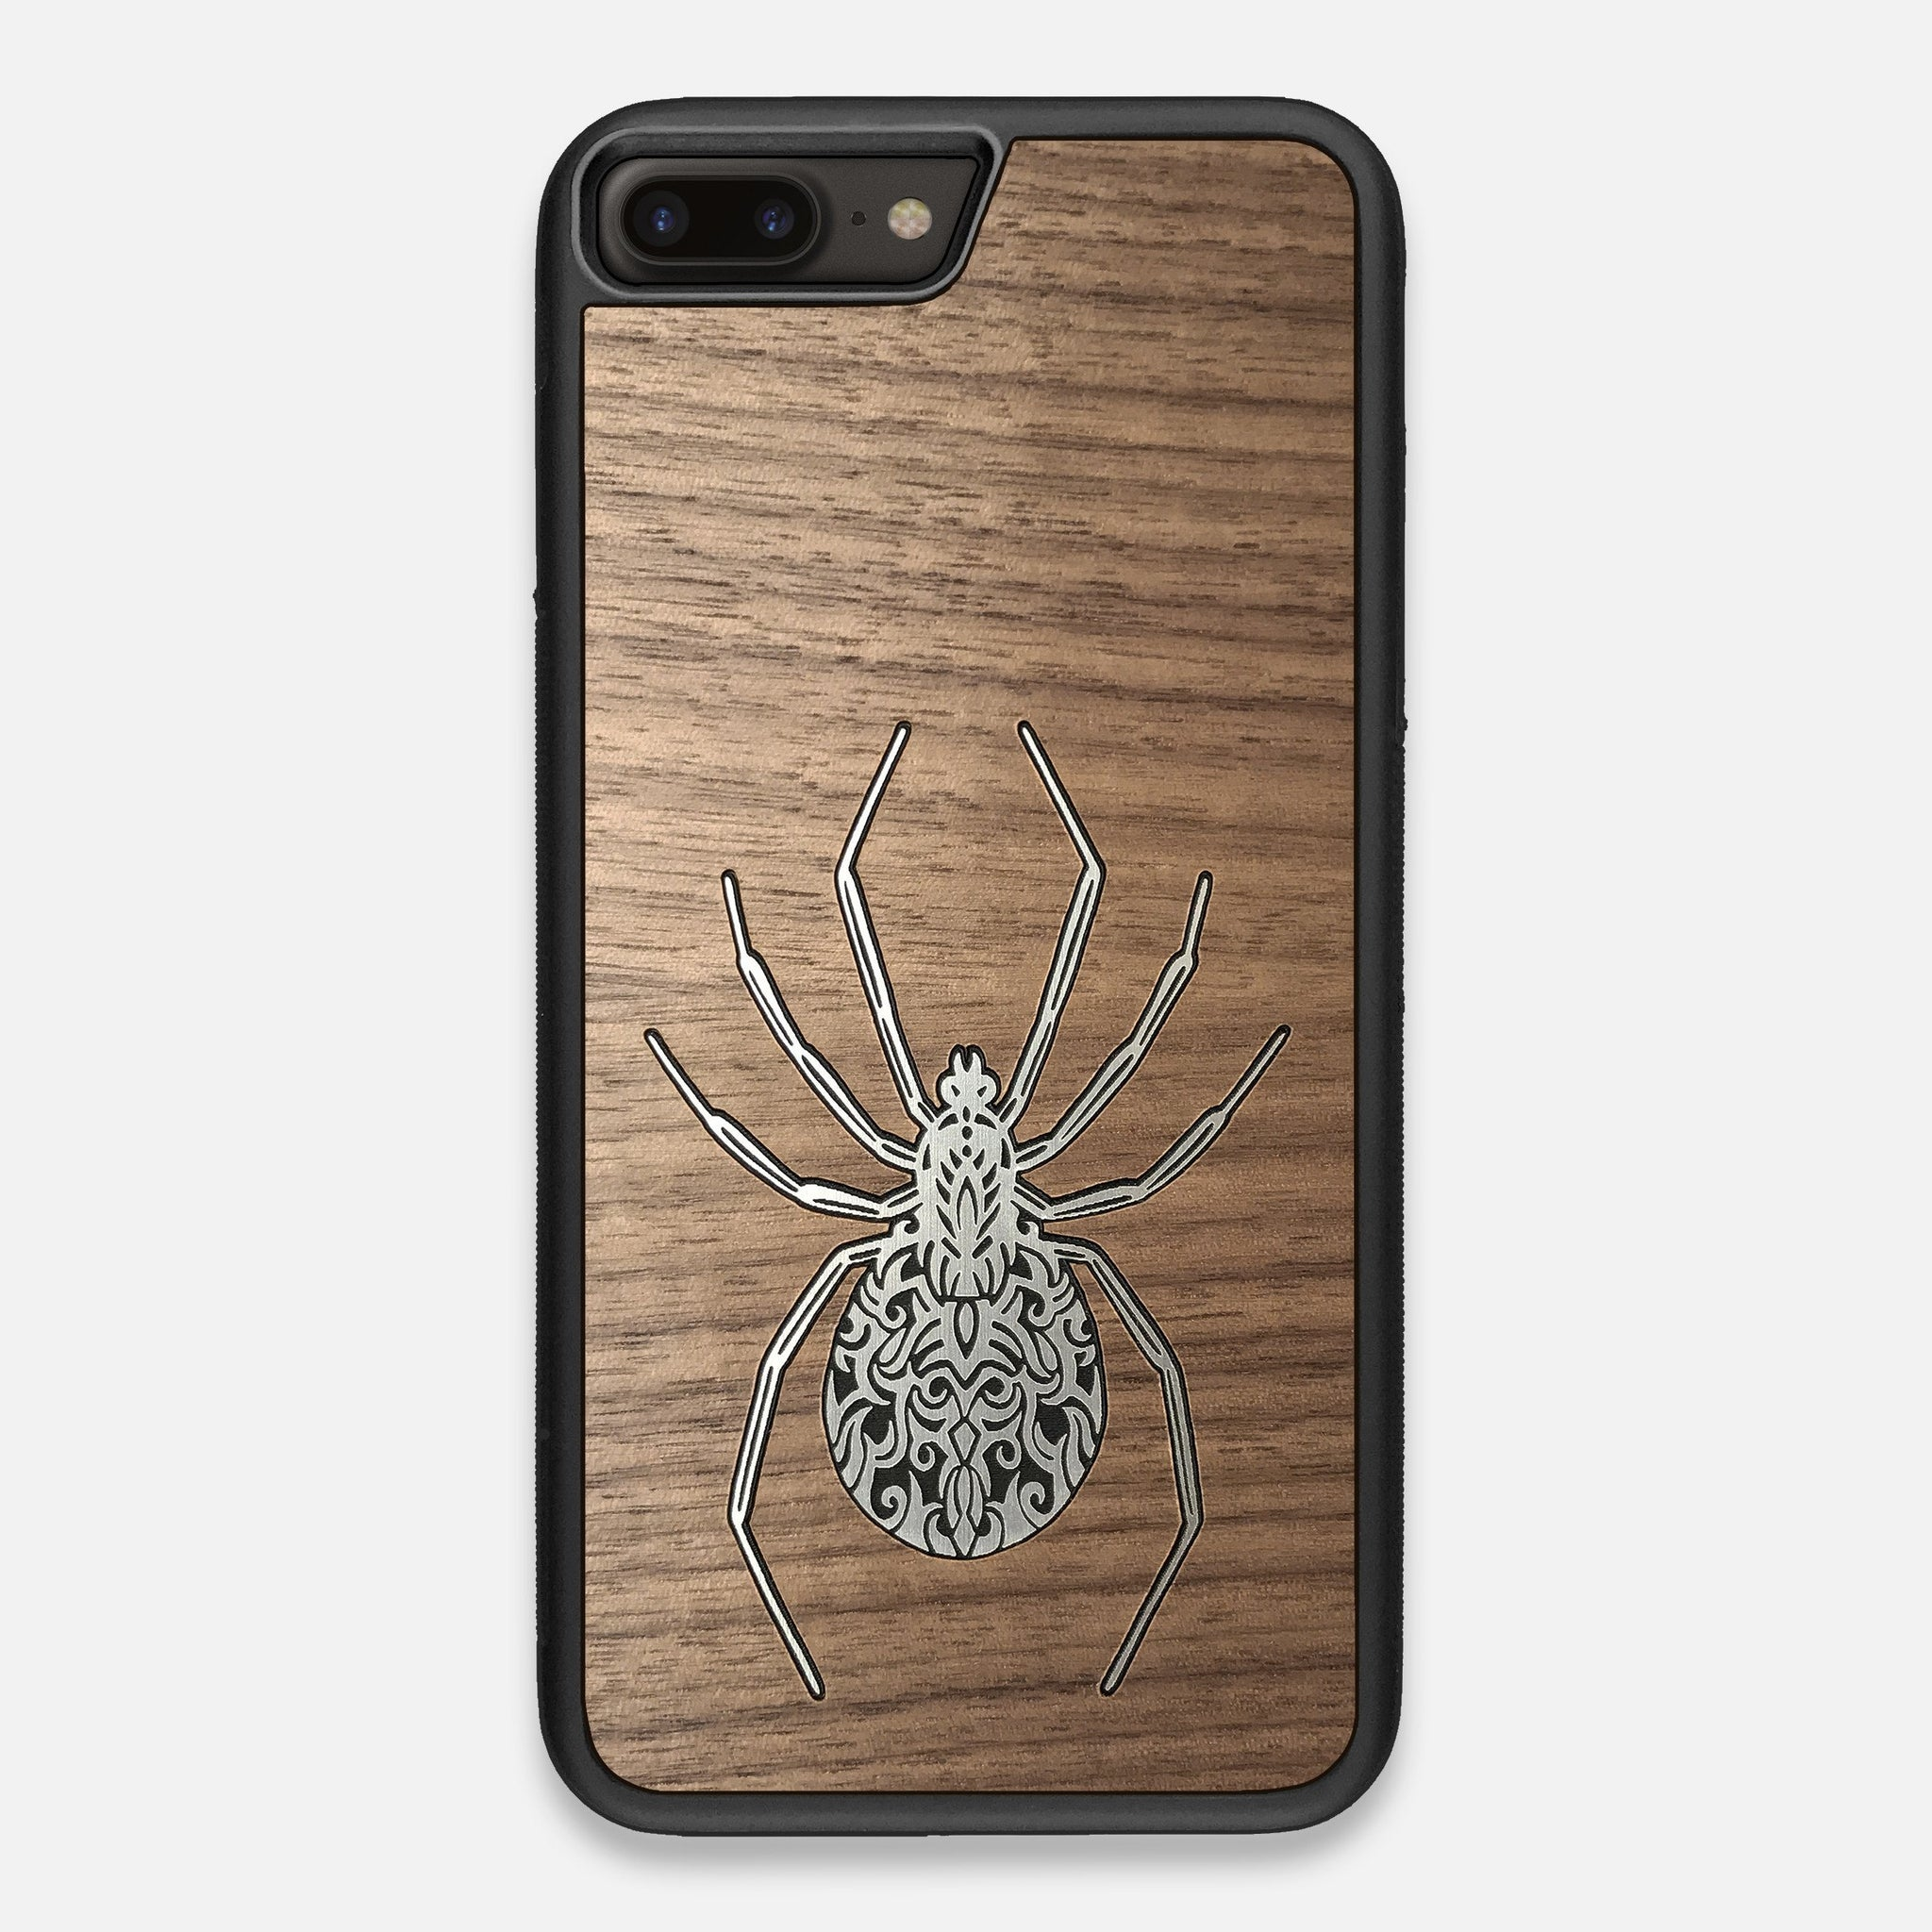 Front view of the Spider by Pavneet Sembhi Silver Walnut Wood iPhone 7/8 Plus Case by Keyway Designs